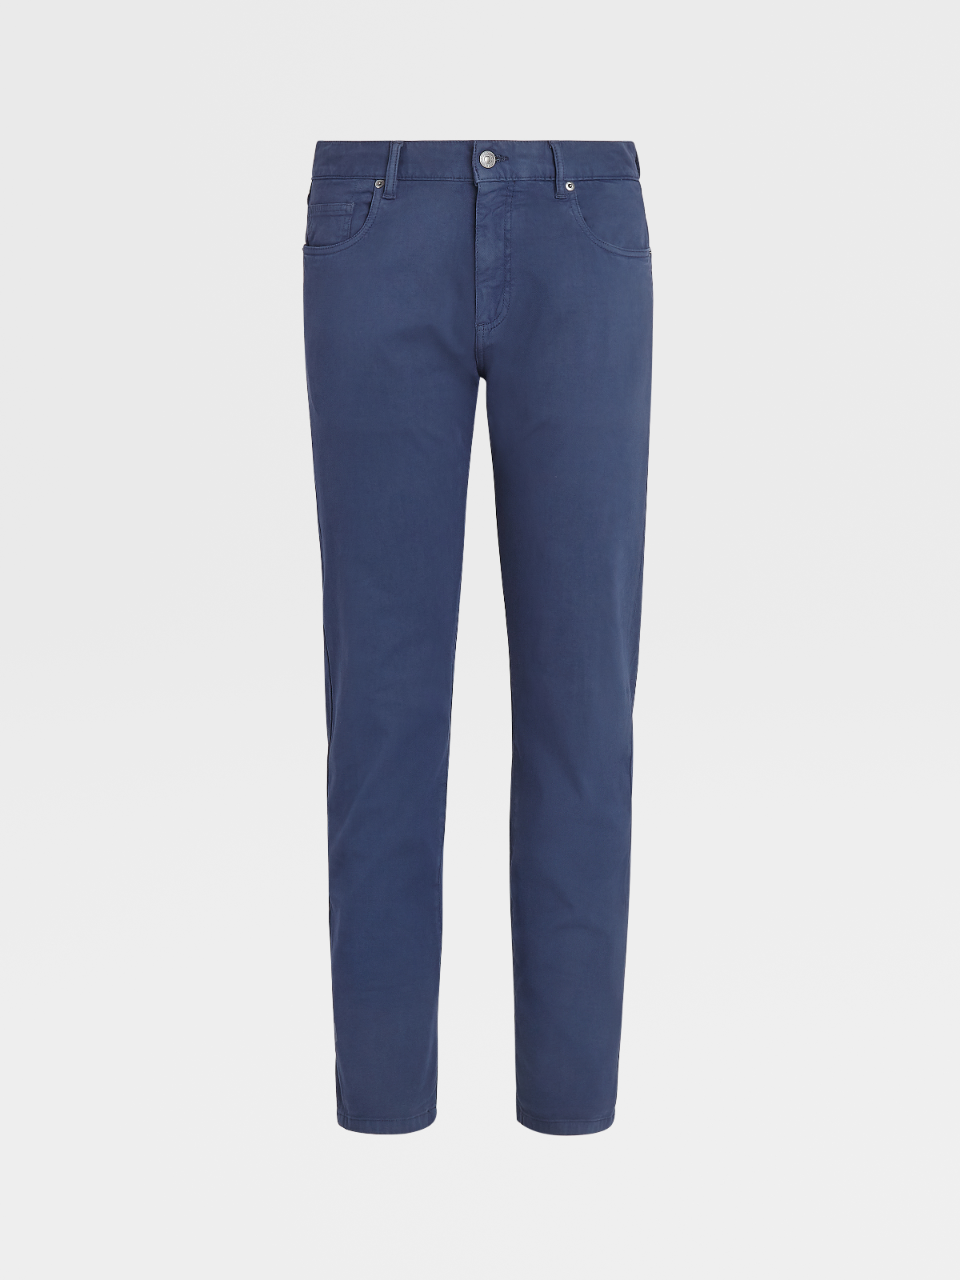 Stretch Cotton And Lyocell Denim Trousers